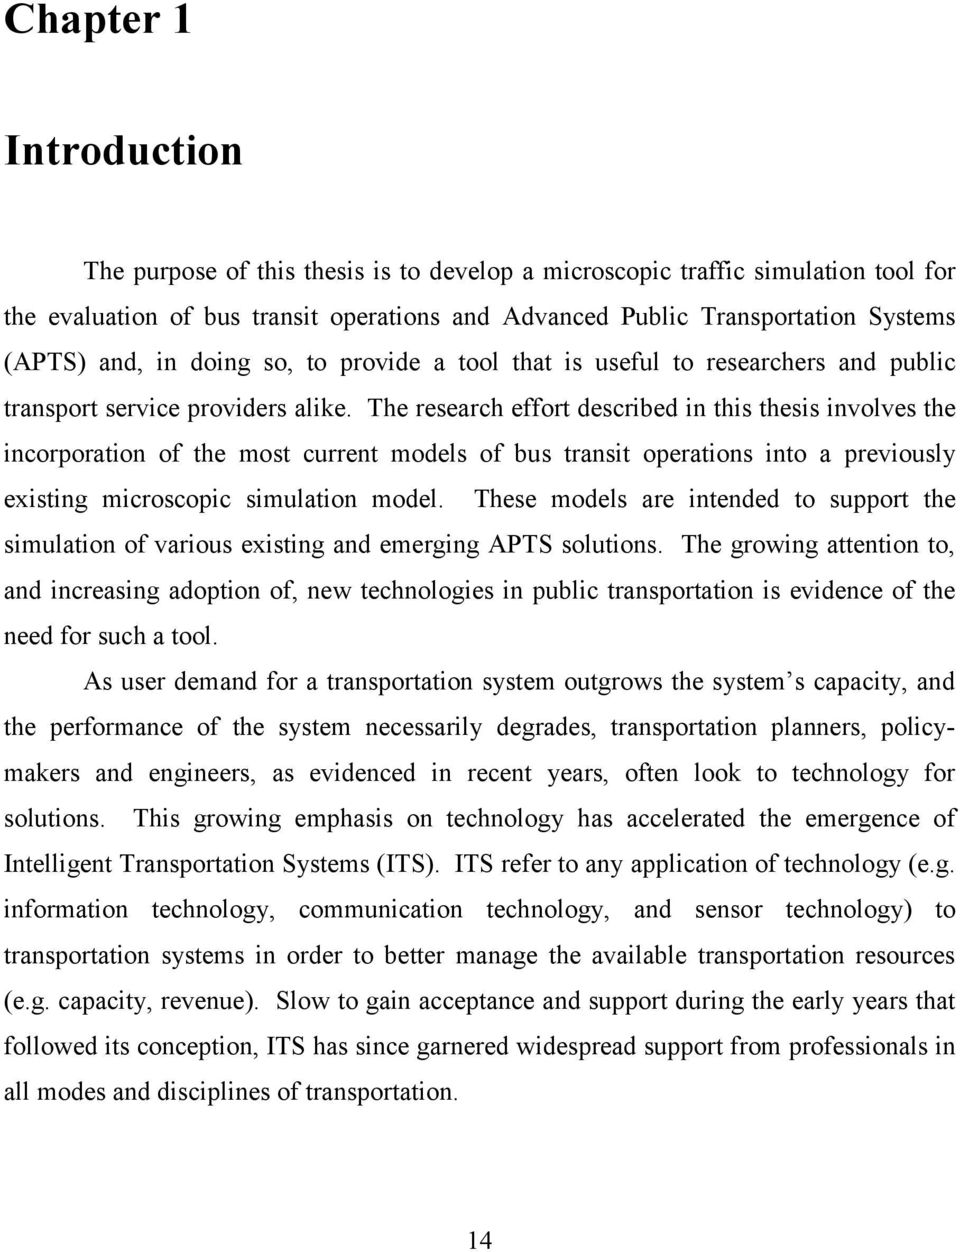 The research effort described in this thesis involves the incorporation of the most current models of bus transit operations into a previously existing microscopic simulation model.